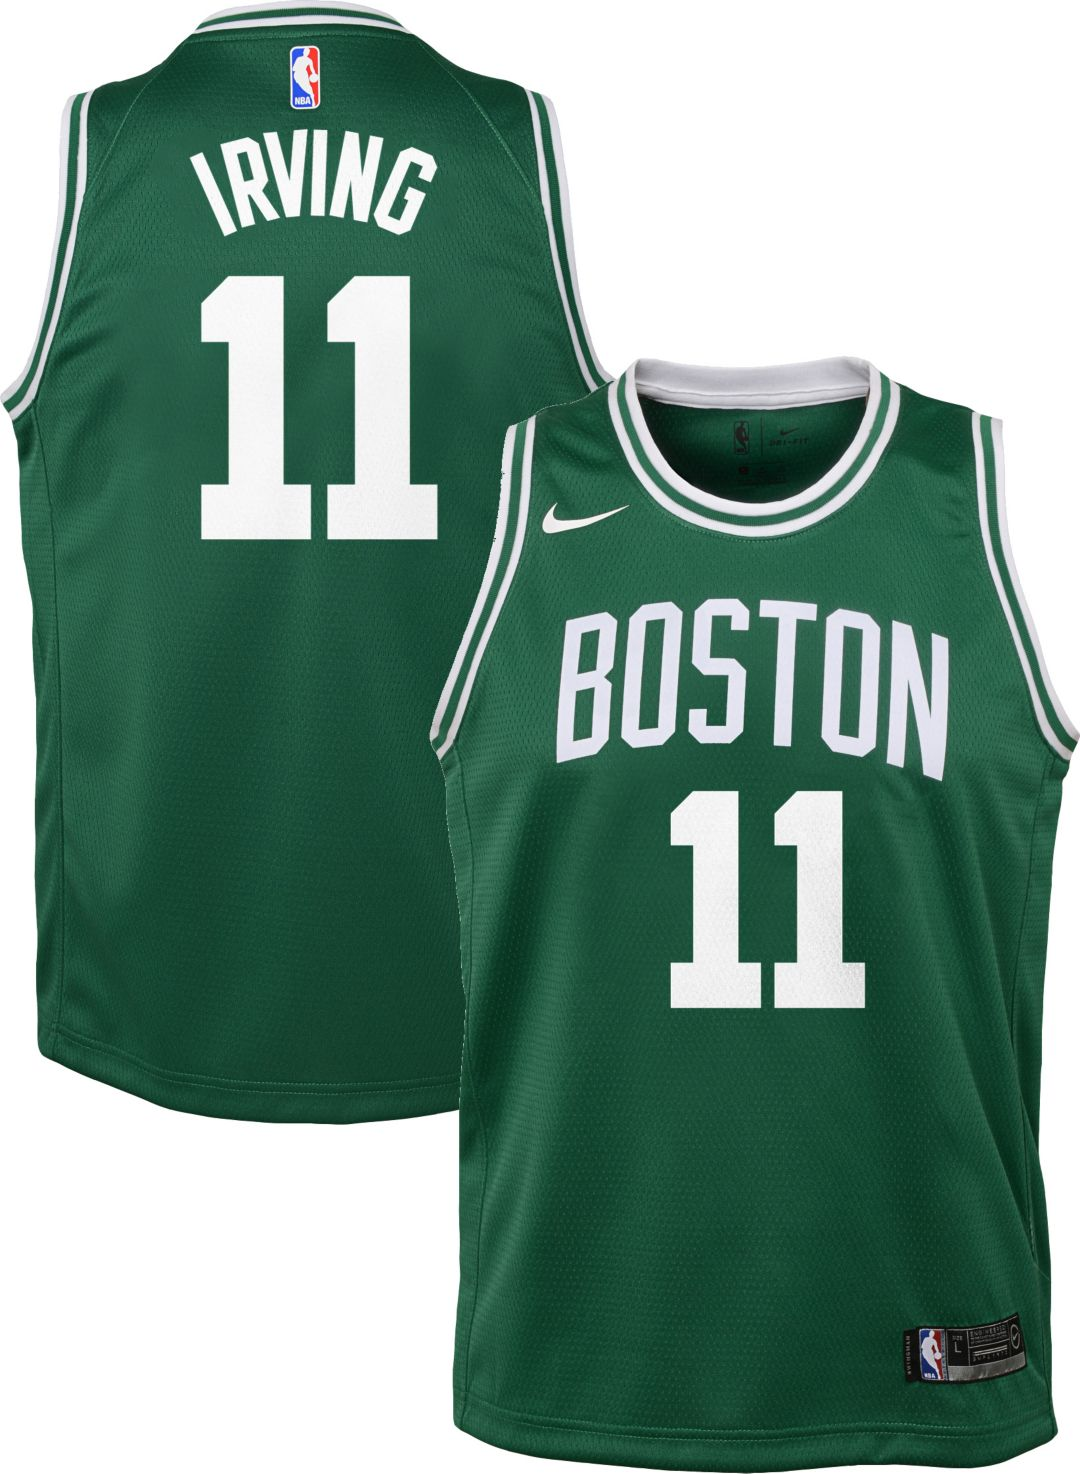 finest selection cd3f4 7c3da Nike Youth Boston Celtics Kyrie Irving #11 Kelly Green Dri-FIT Swingman  Jersey